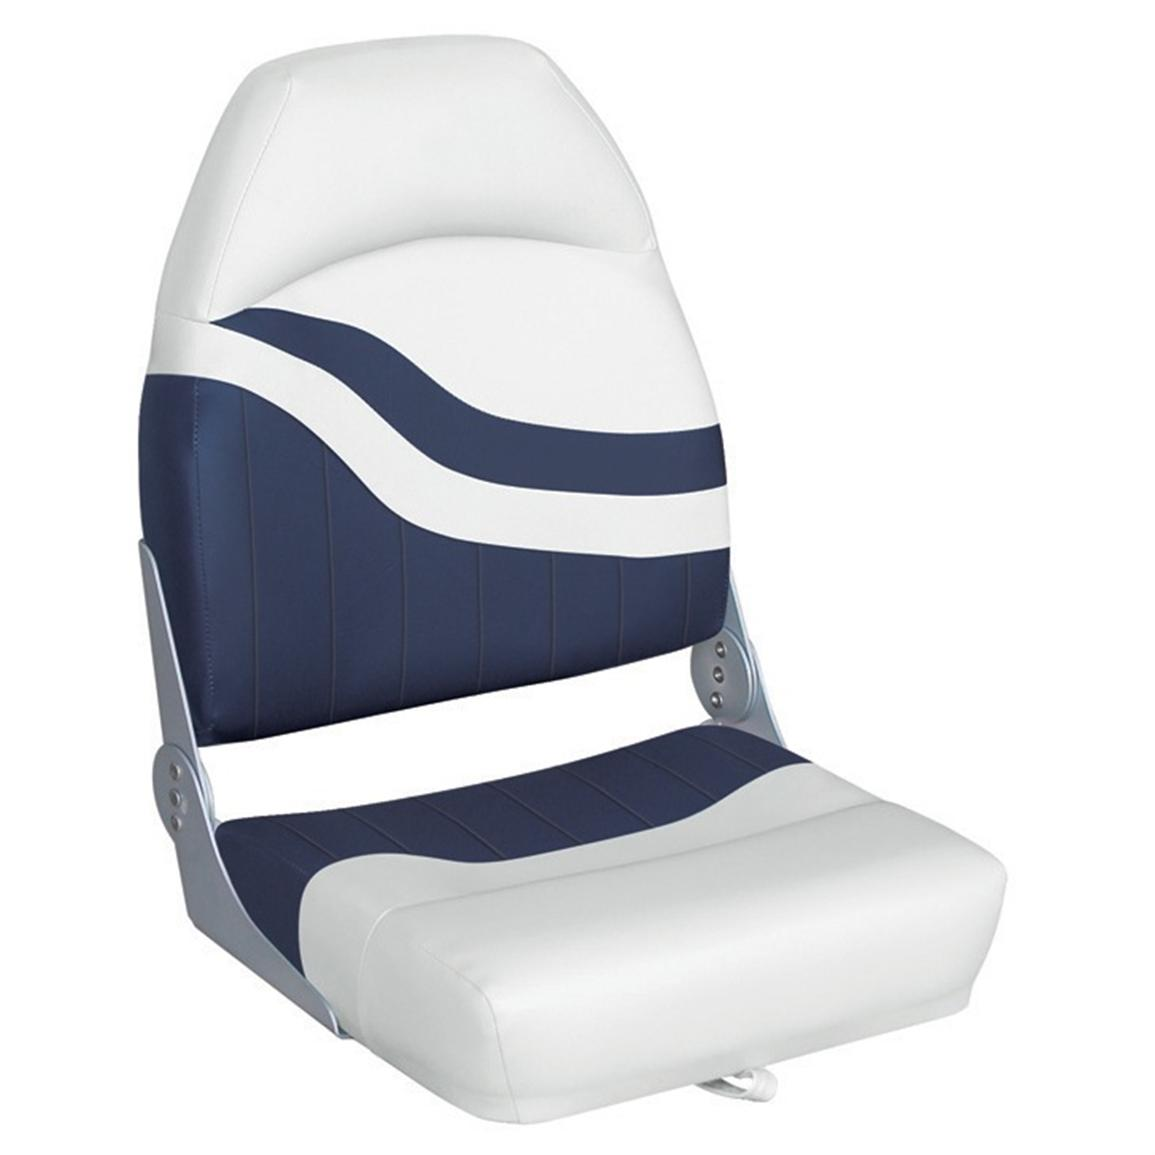 Wise® Weekender Series Boat Seat, White / Navy